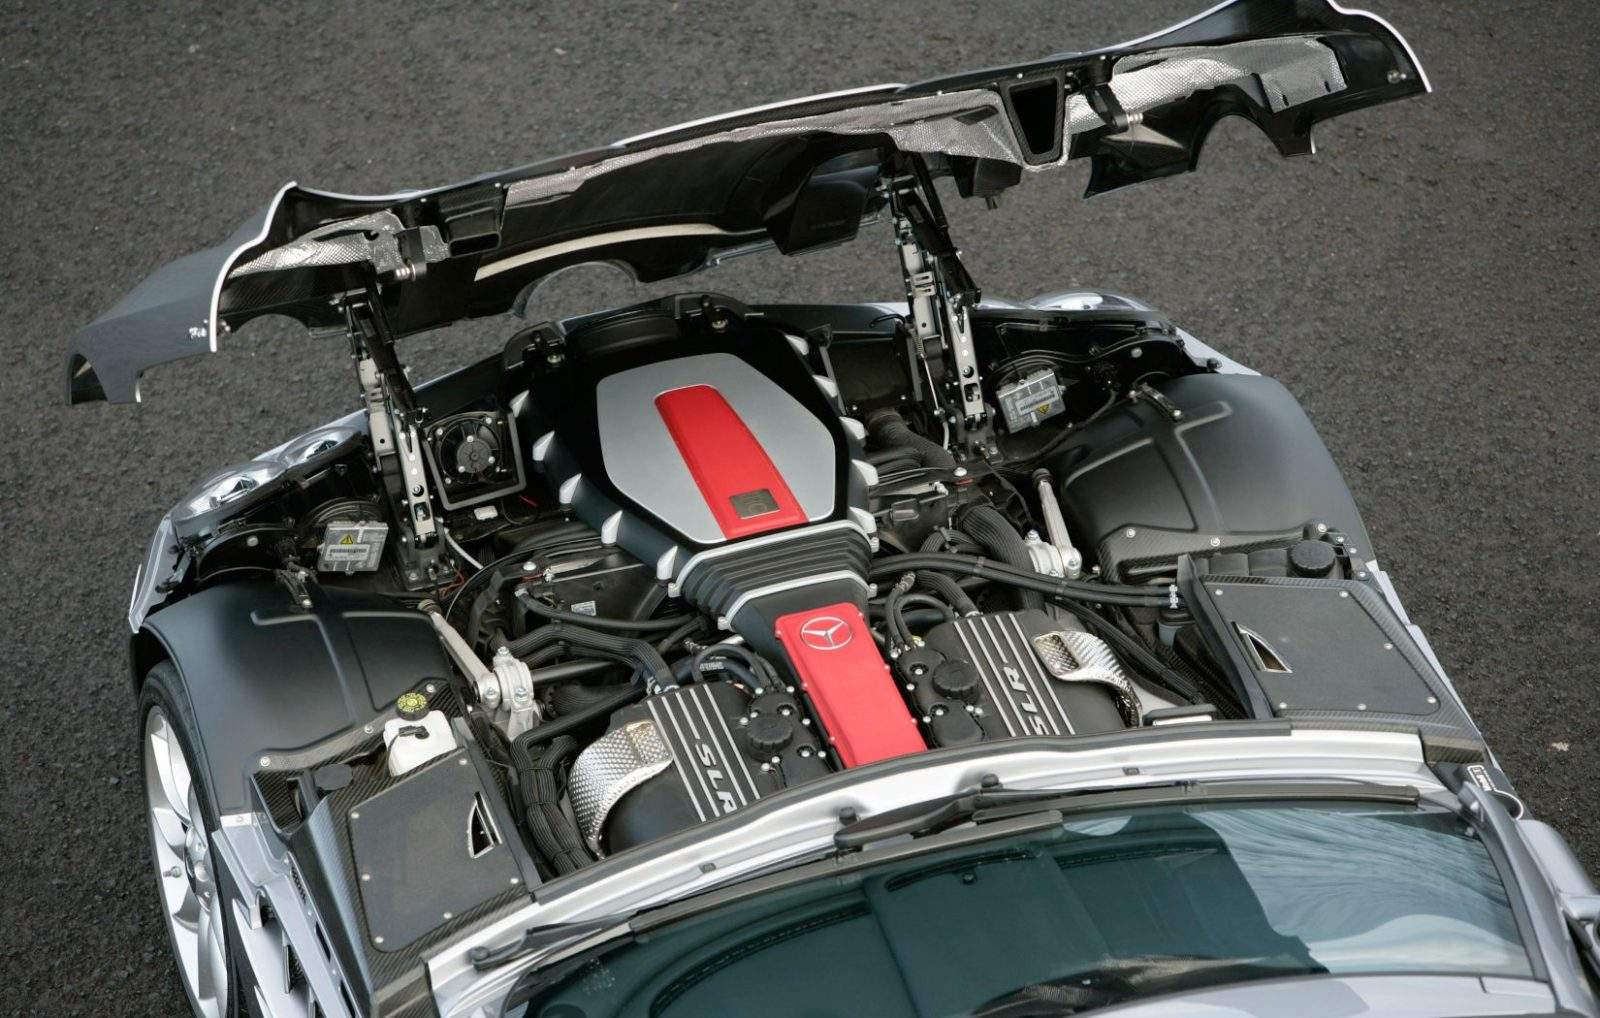 the-bespoke-amg-supercharged-v8-at-the-heart-of-the-mercedes-benz-slr-mclaren